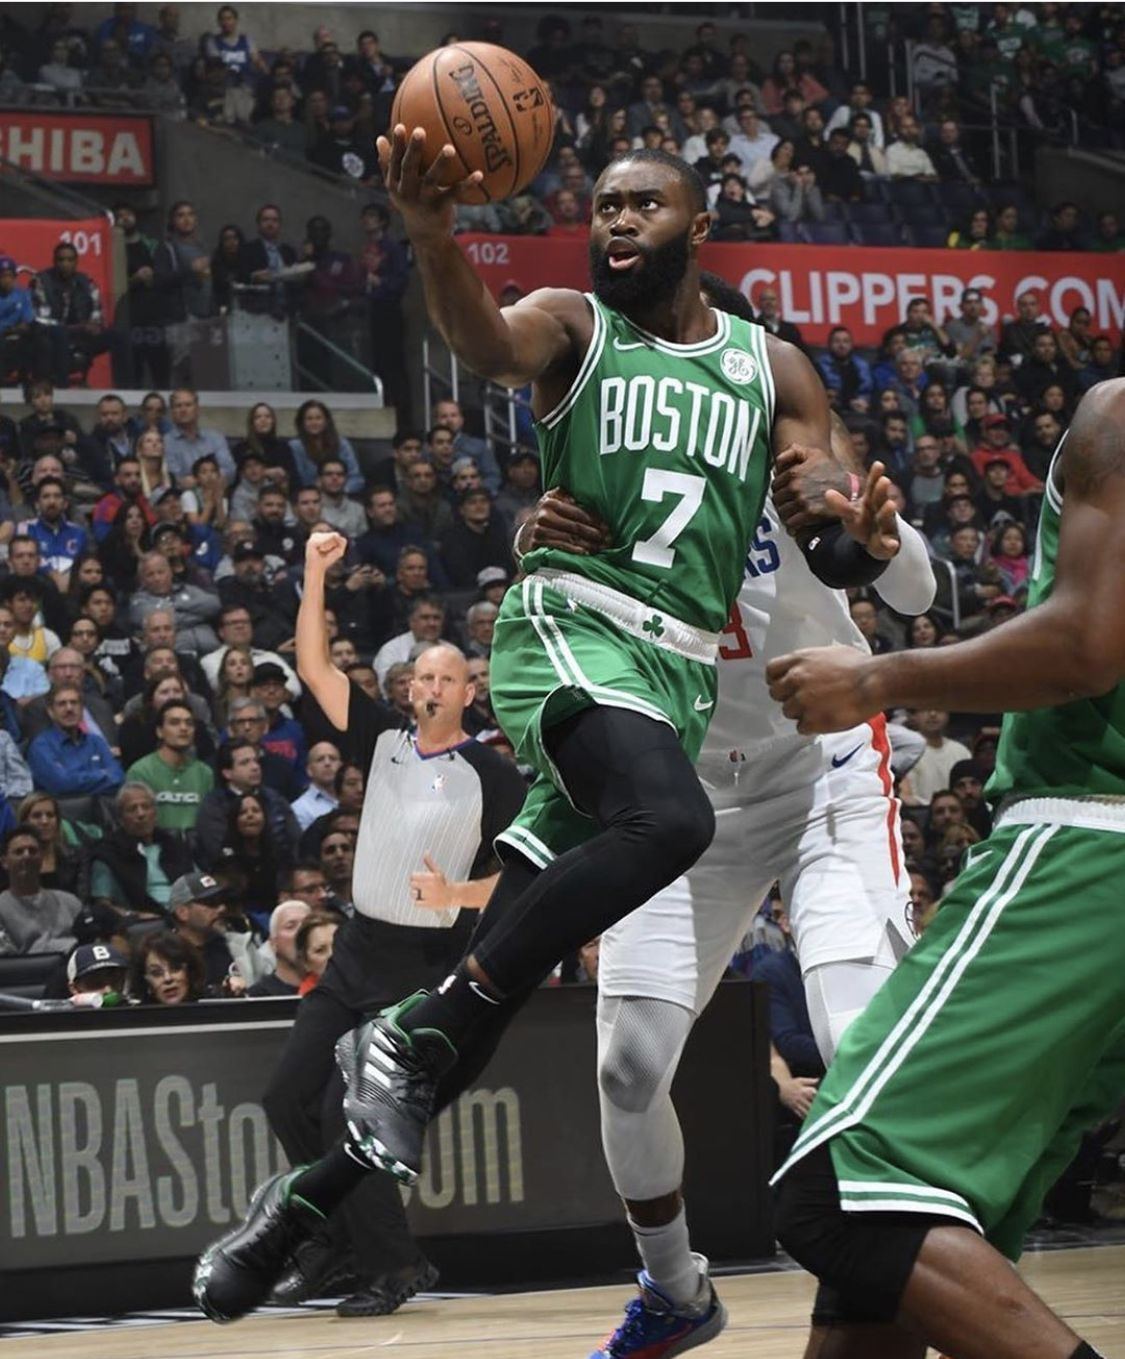 Pin by Cool Breeze on 2020s (With images) Boston celtics